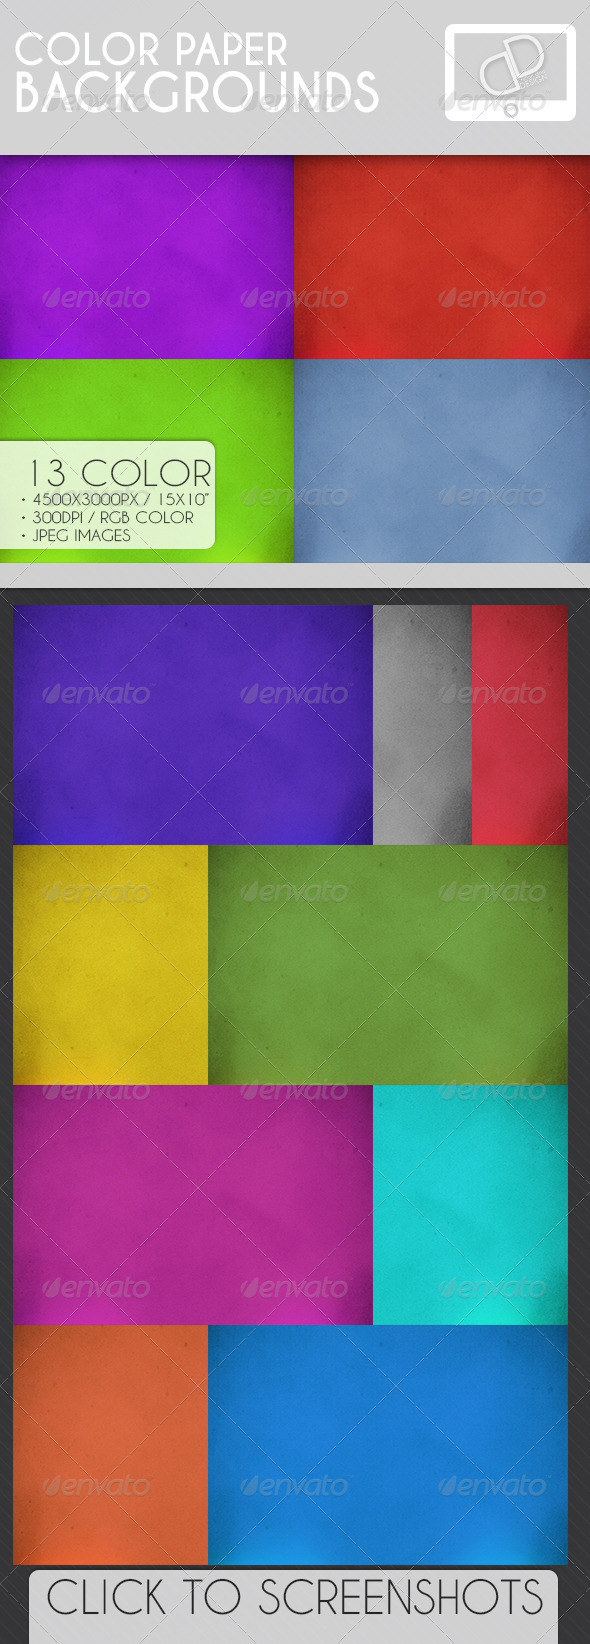 Color Paper Backgrounds